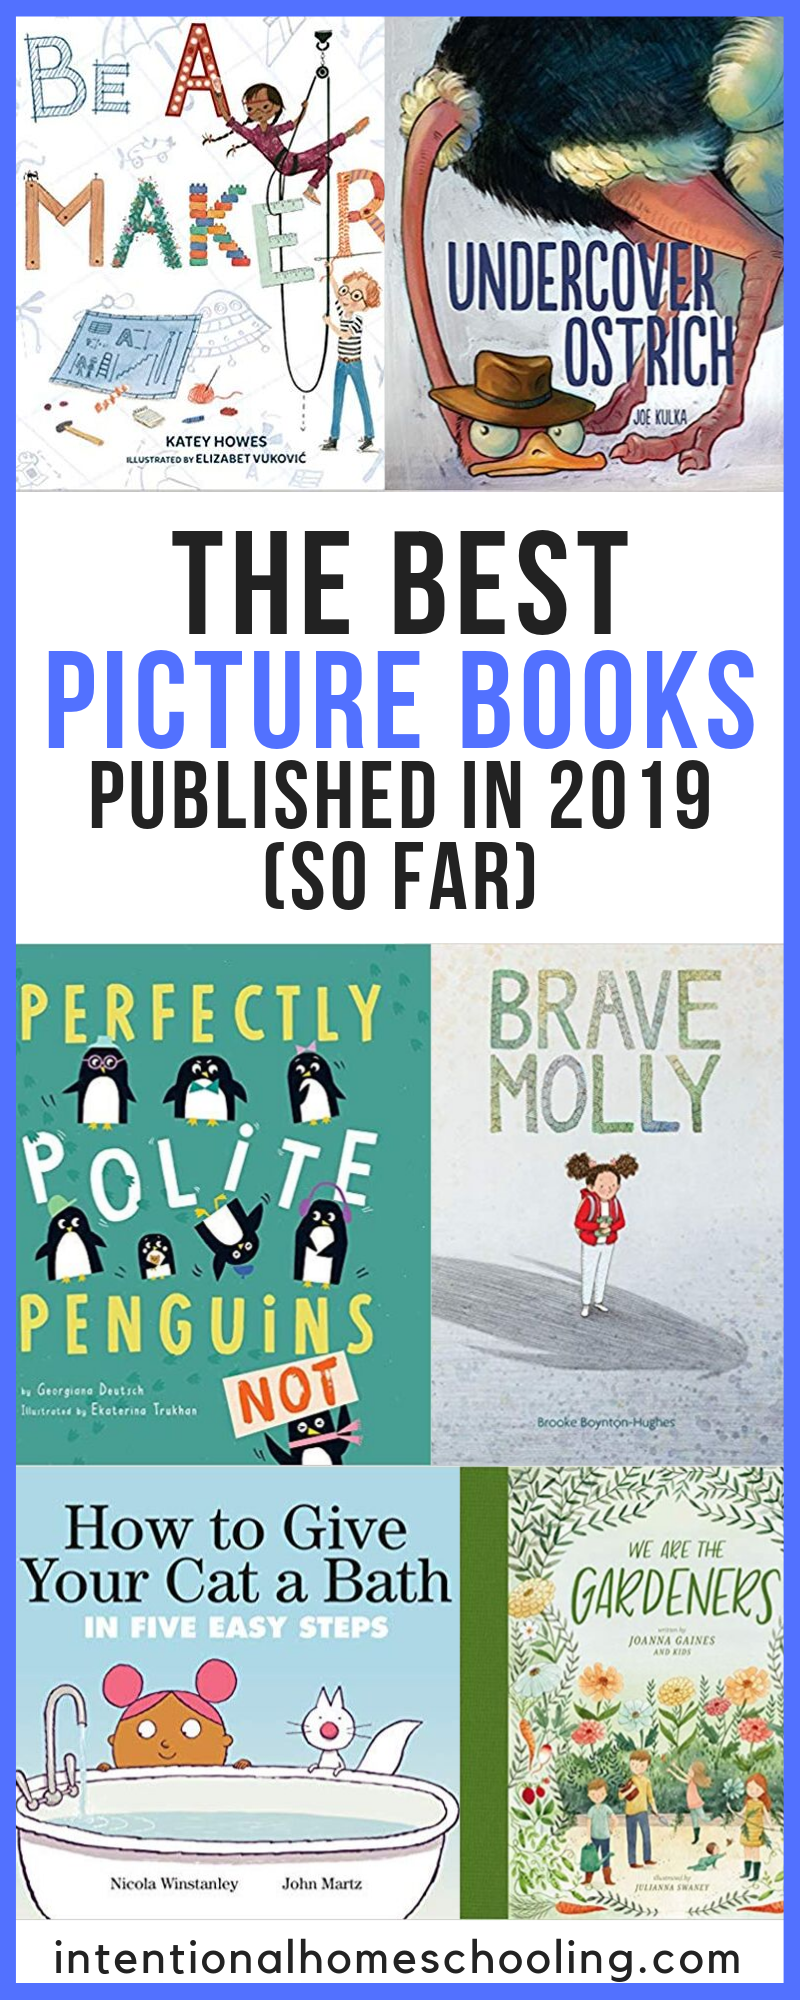 The Best Picture Books Published in 2019 - so far - part two